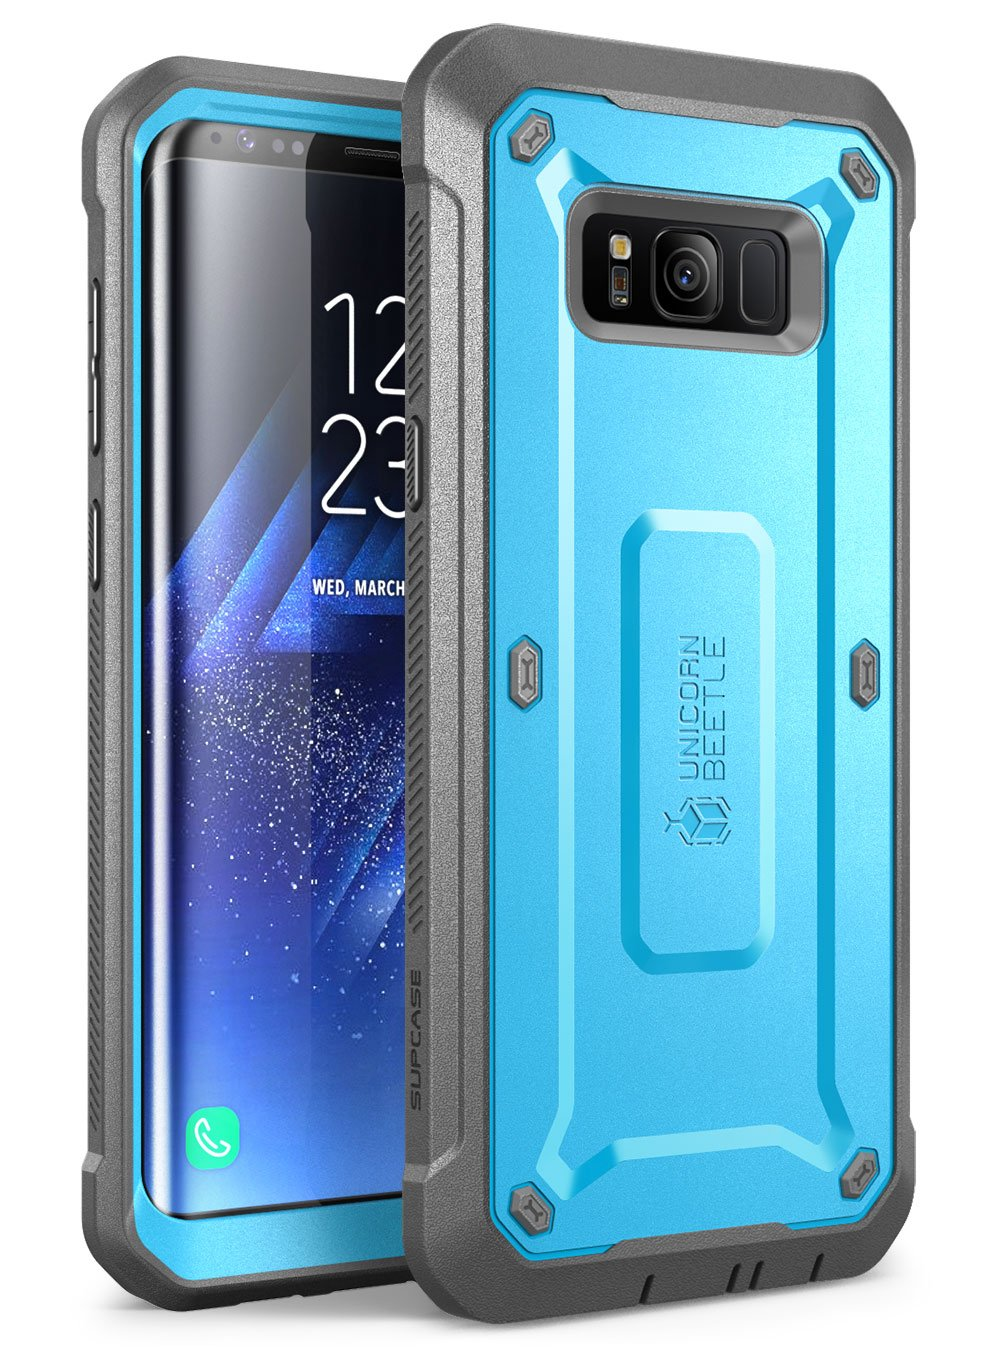 Samsung Galaxy S8 Case, SUPCASE Full-body Rugged Holster Case with Built-in Screen Protector for Galaxy S8 (2017 Release), Not Fit Galaxy S8 Plus, Unicorn Beetle Shield Series - Retail Package (Blue)